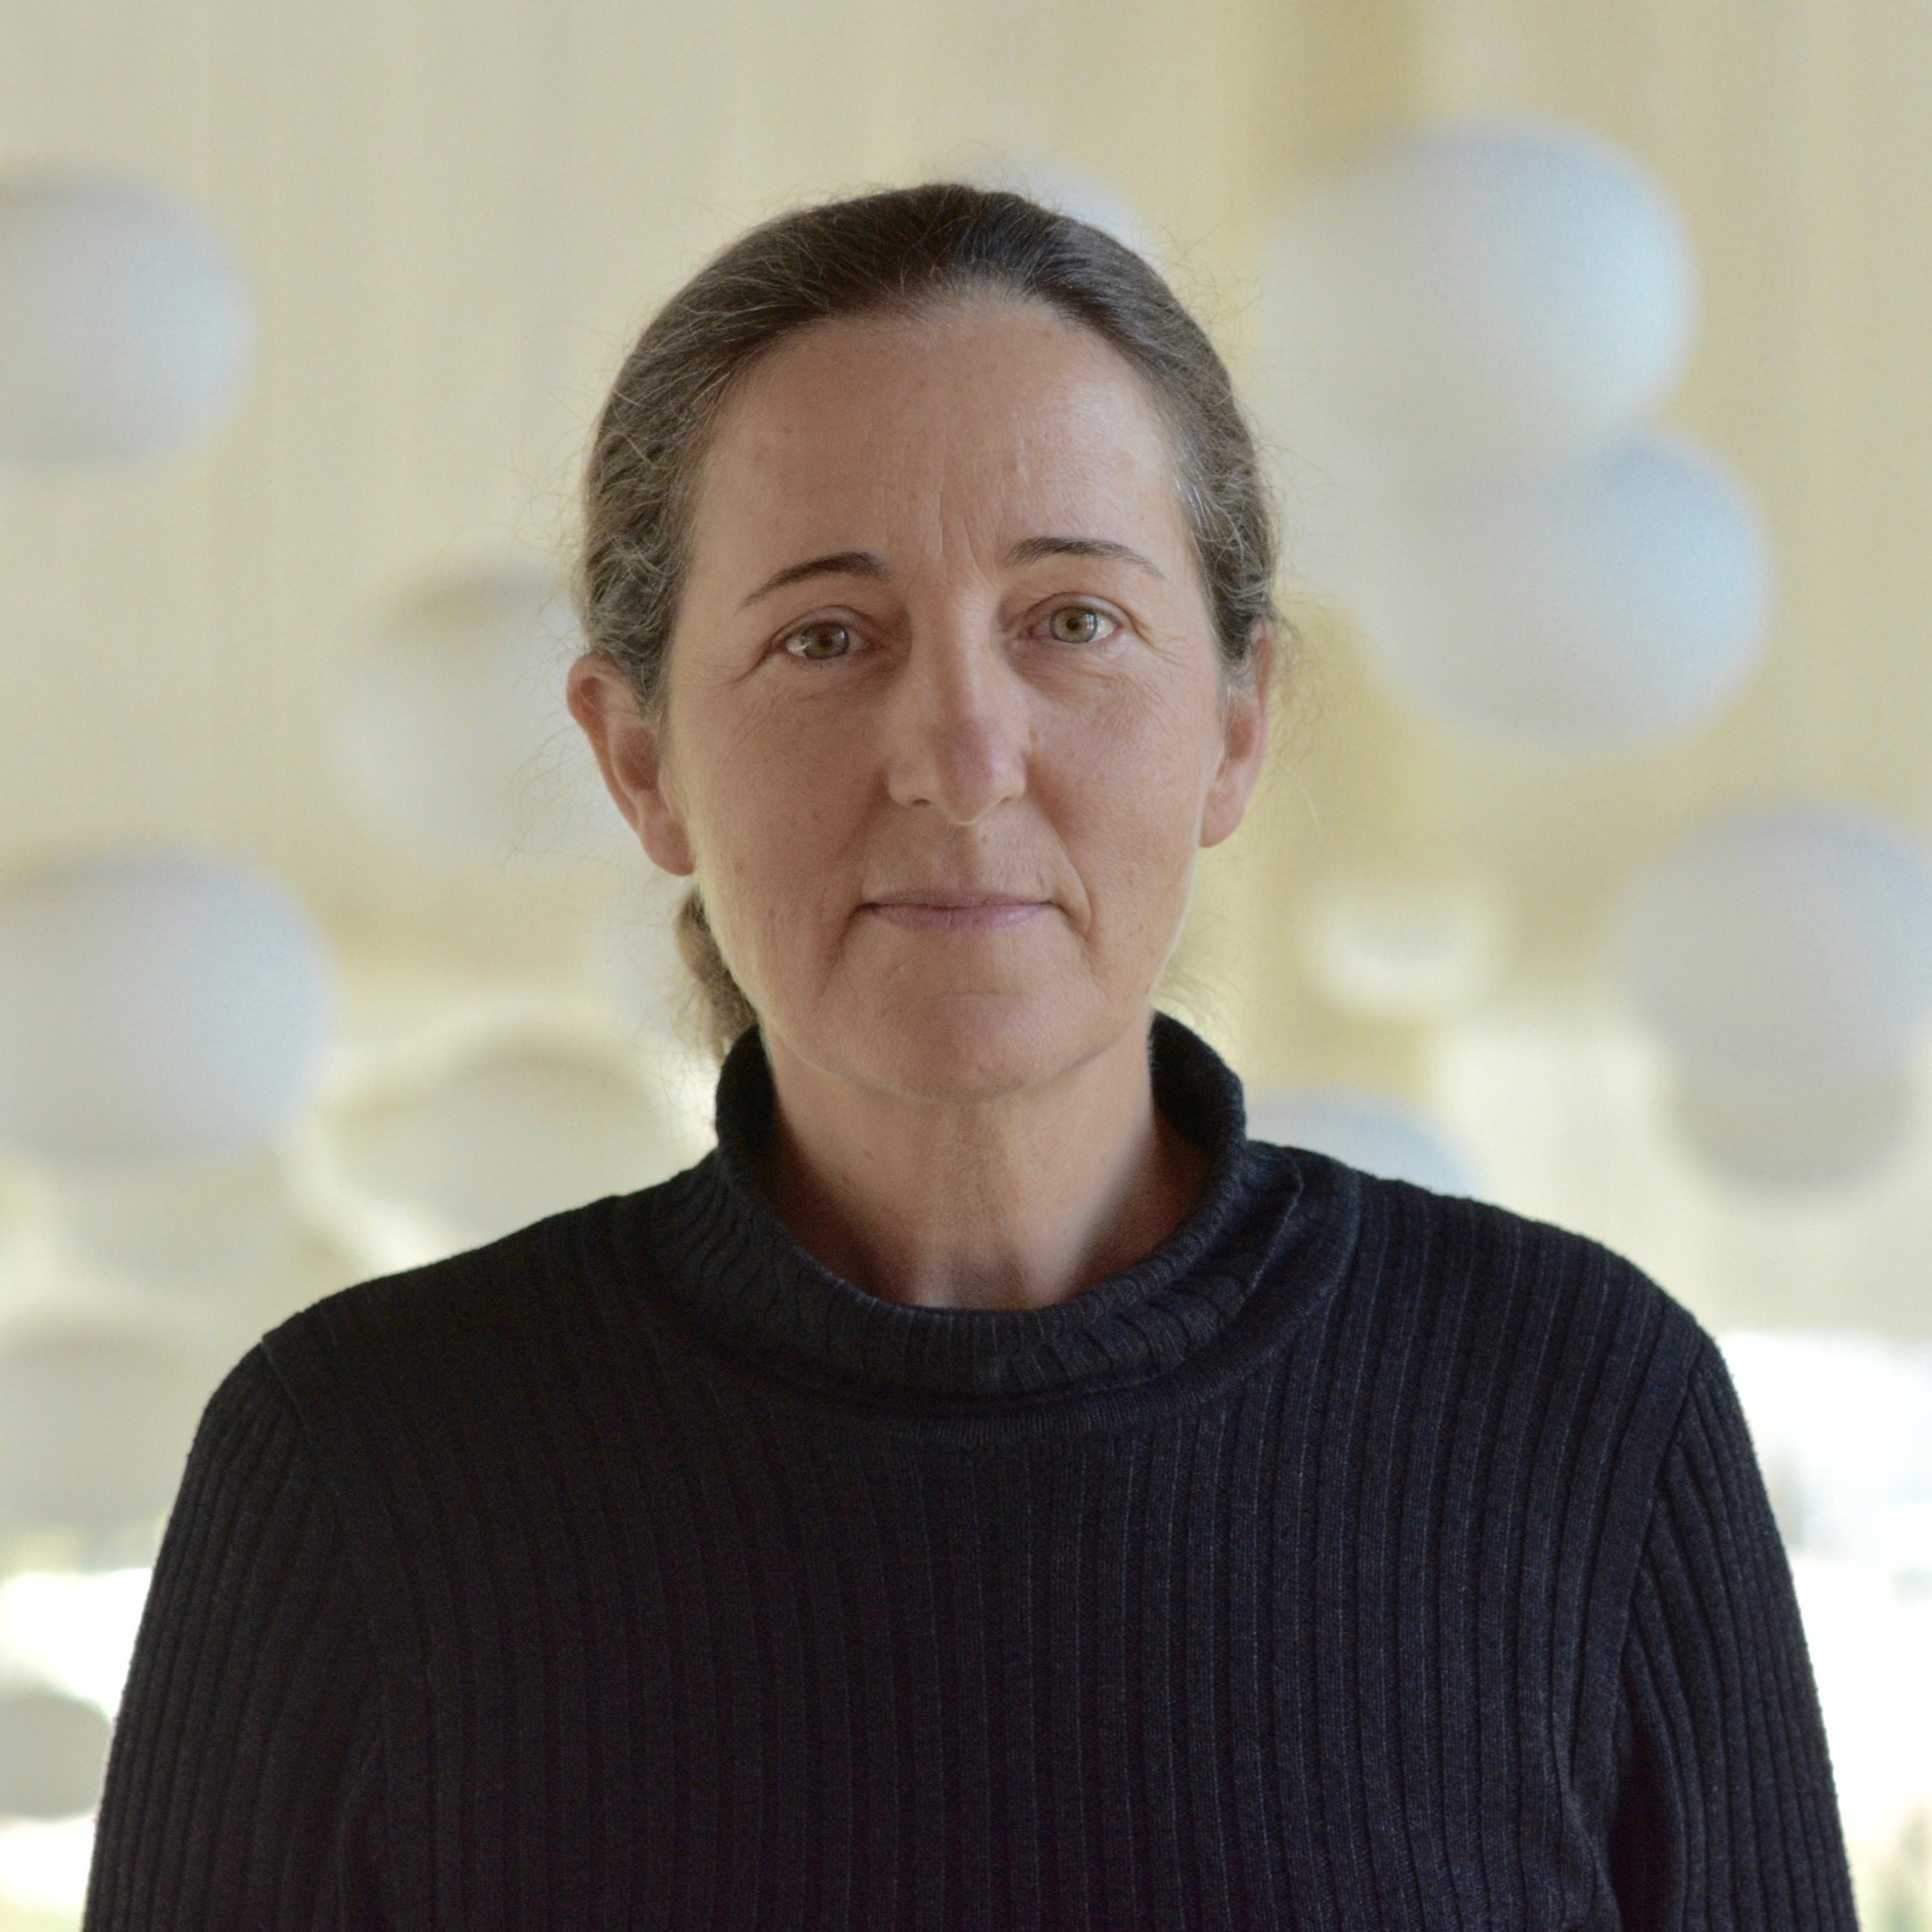 Bolette Hartmann - Co-founderBiochemist and PhD with 25 years of experience with gut hormones and bone metabolism.